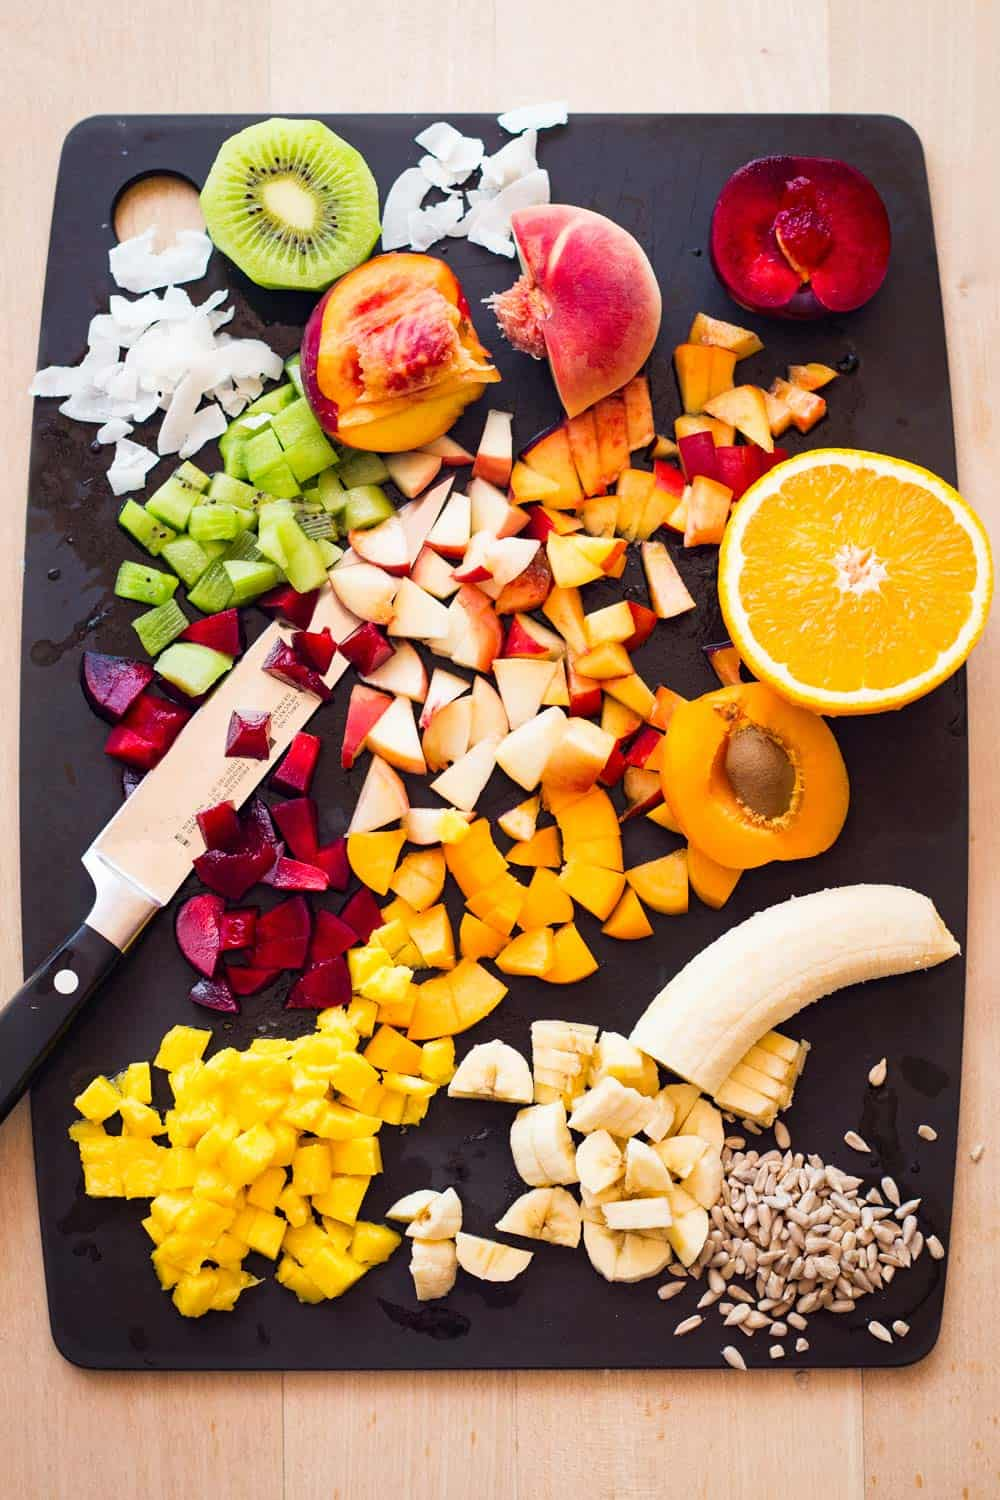 Ingredients for a mango fruit salad - mango, banana, stone fruit, kiwi, seeds, dried coconut